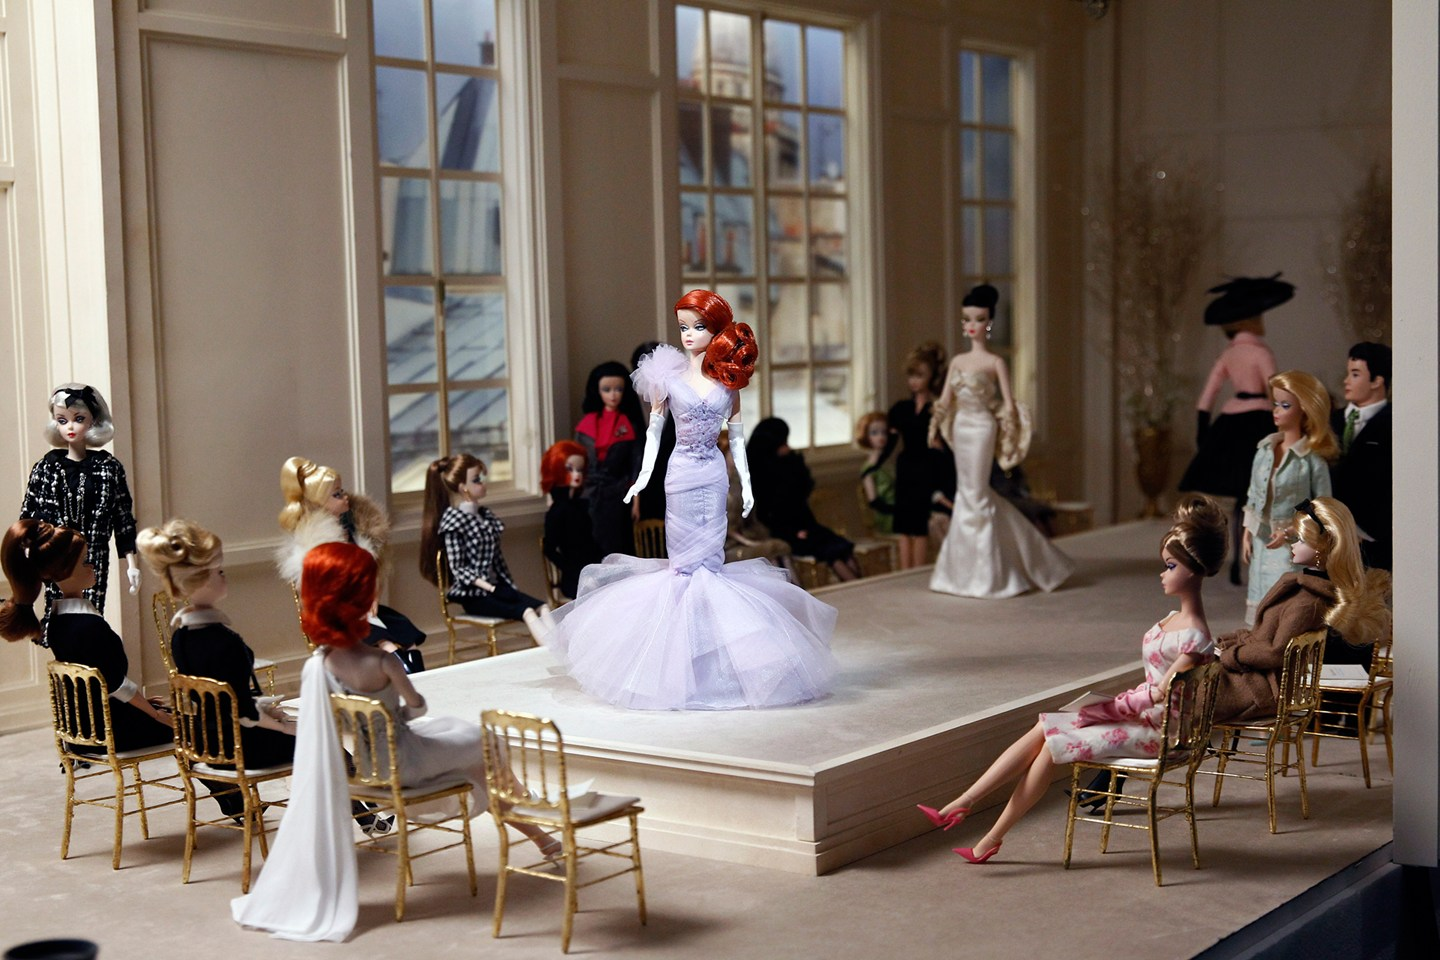 Barbie dolls are displayed at the Museum of Decorative Arts's exhibition Barbie, life of an icon, as part of Paris Fashion Week